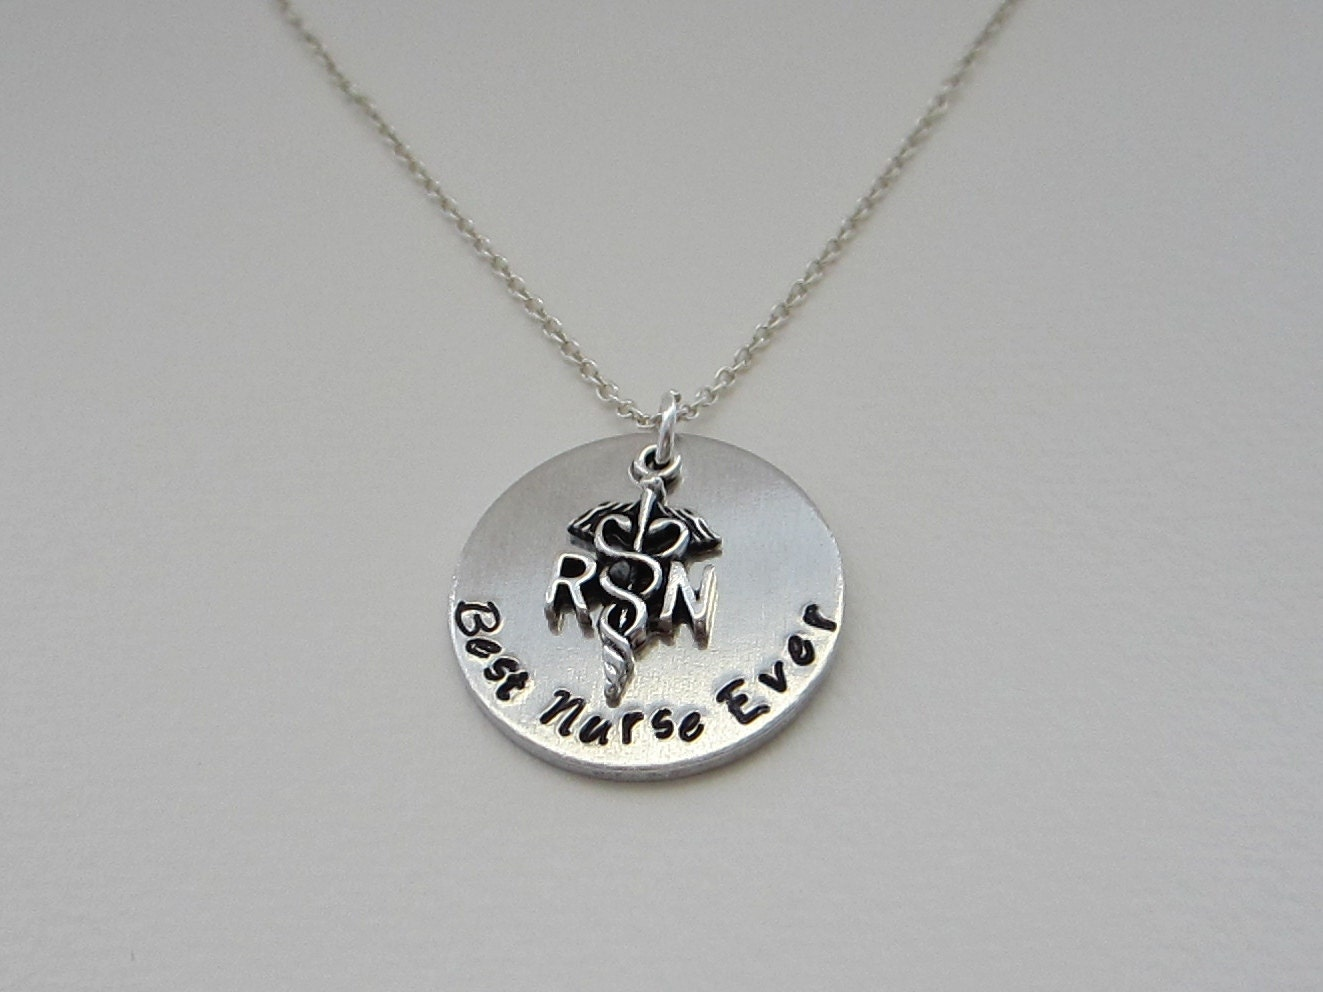 best necklace with rn charm necklace gift